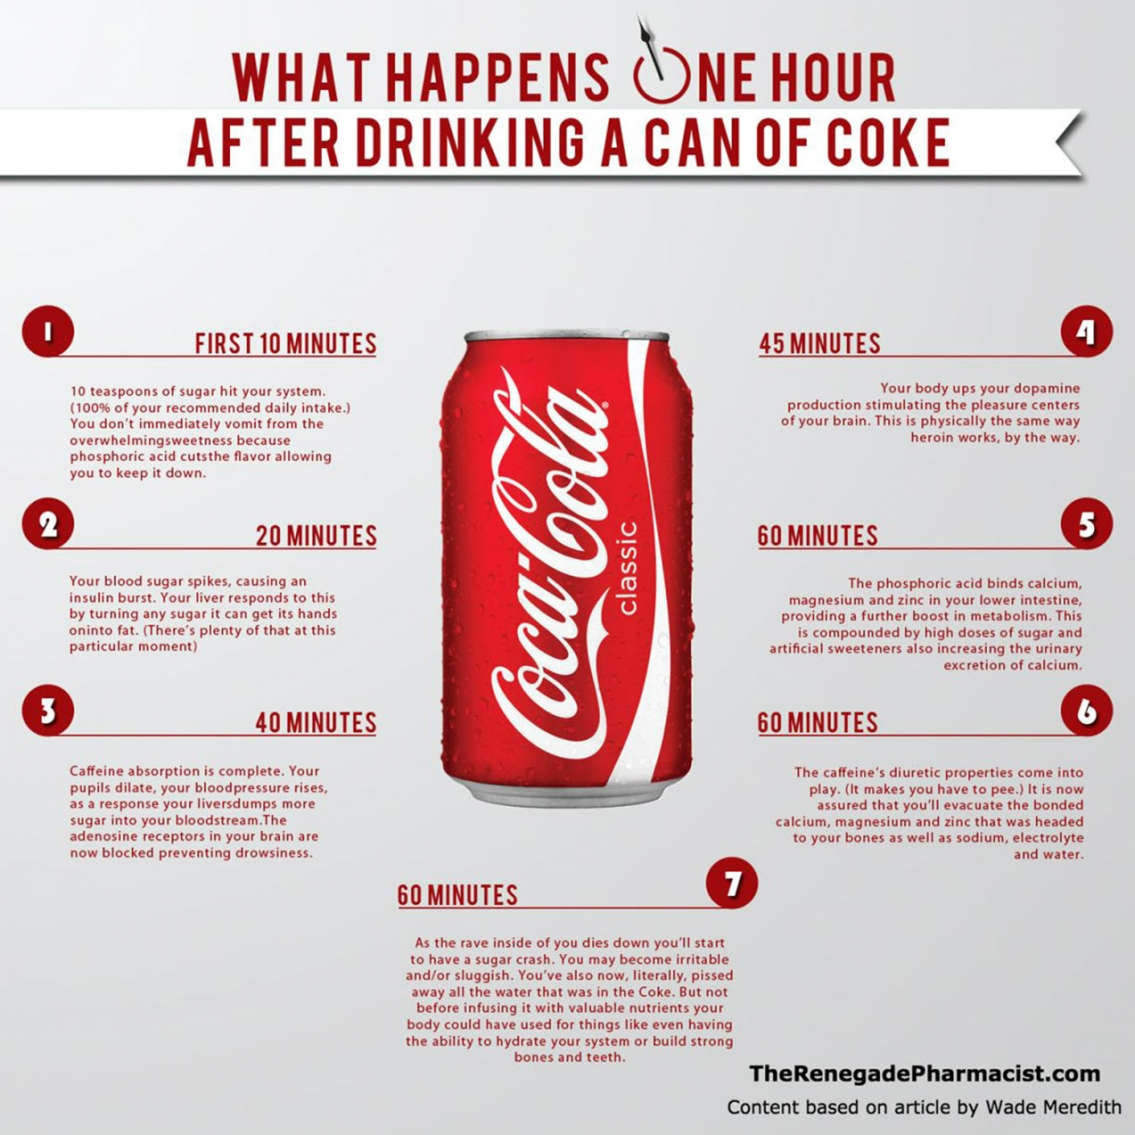 What Happens One Hour After Drinking A Can Of Coke - Infographic